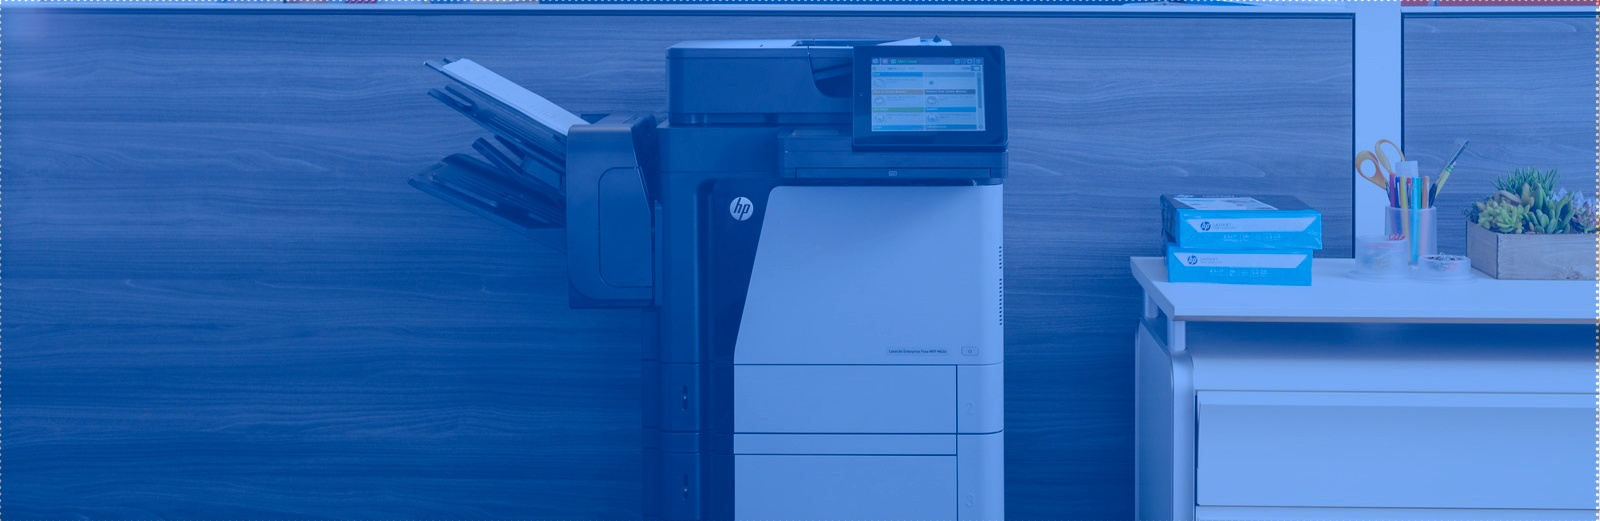 HP LaserJet M680 in Office